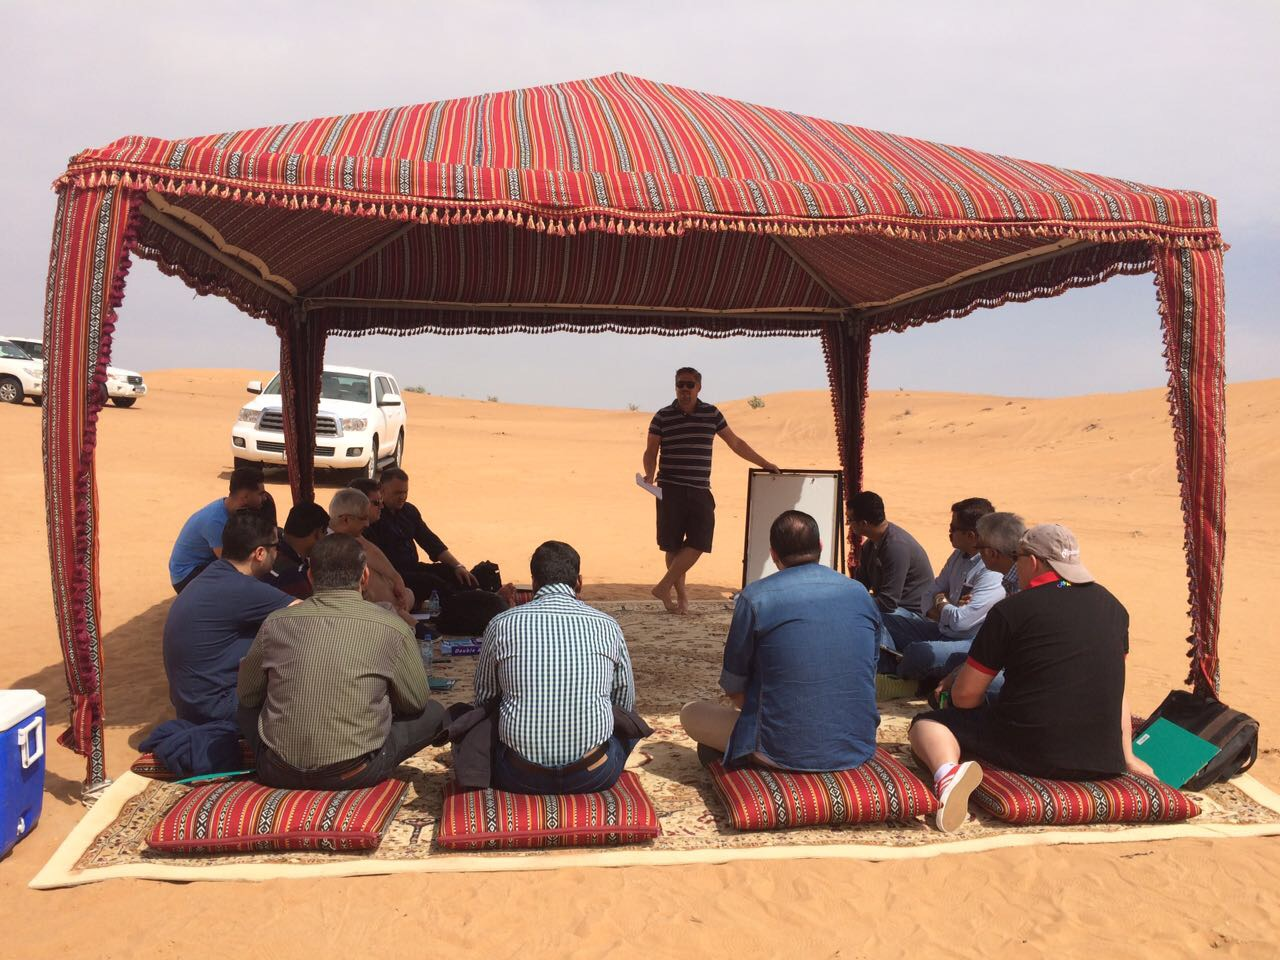 Conference room in the Dubai desert